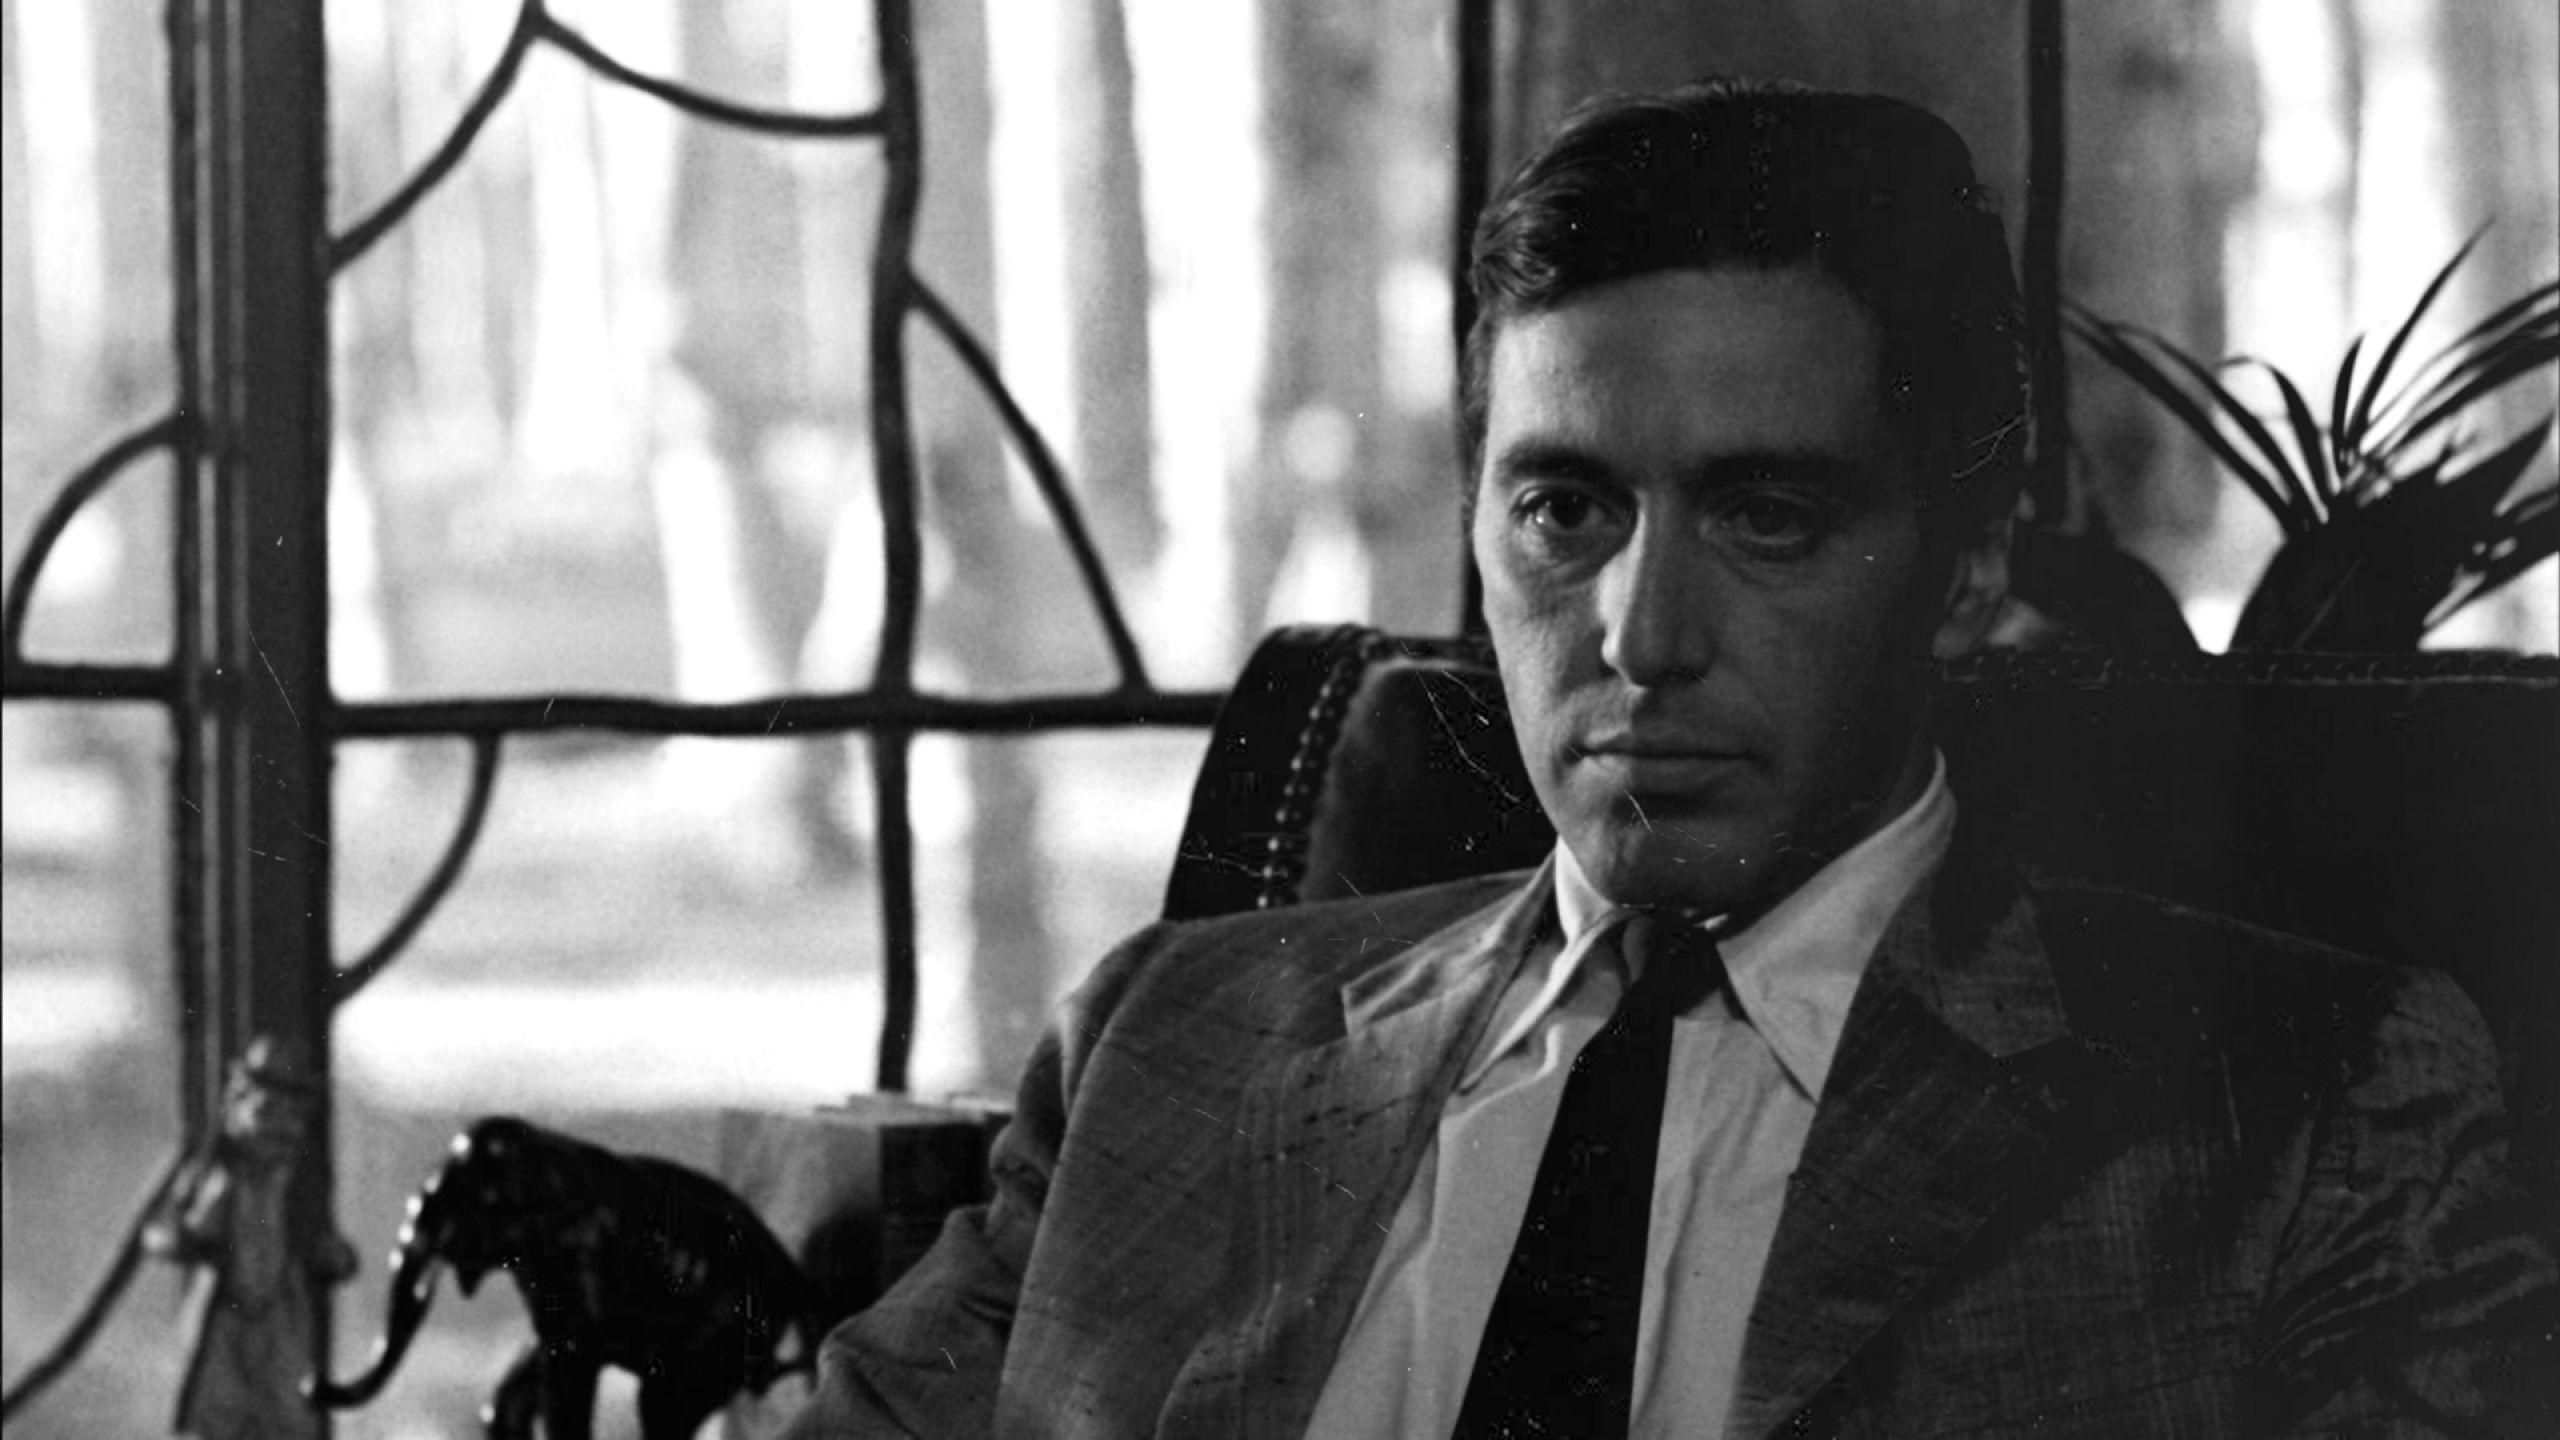 Download Wallpapers, Download 2560x1440 movies the godfather